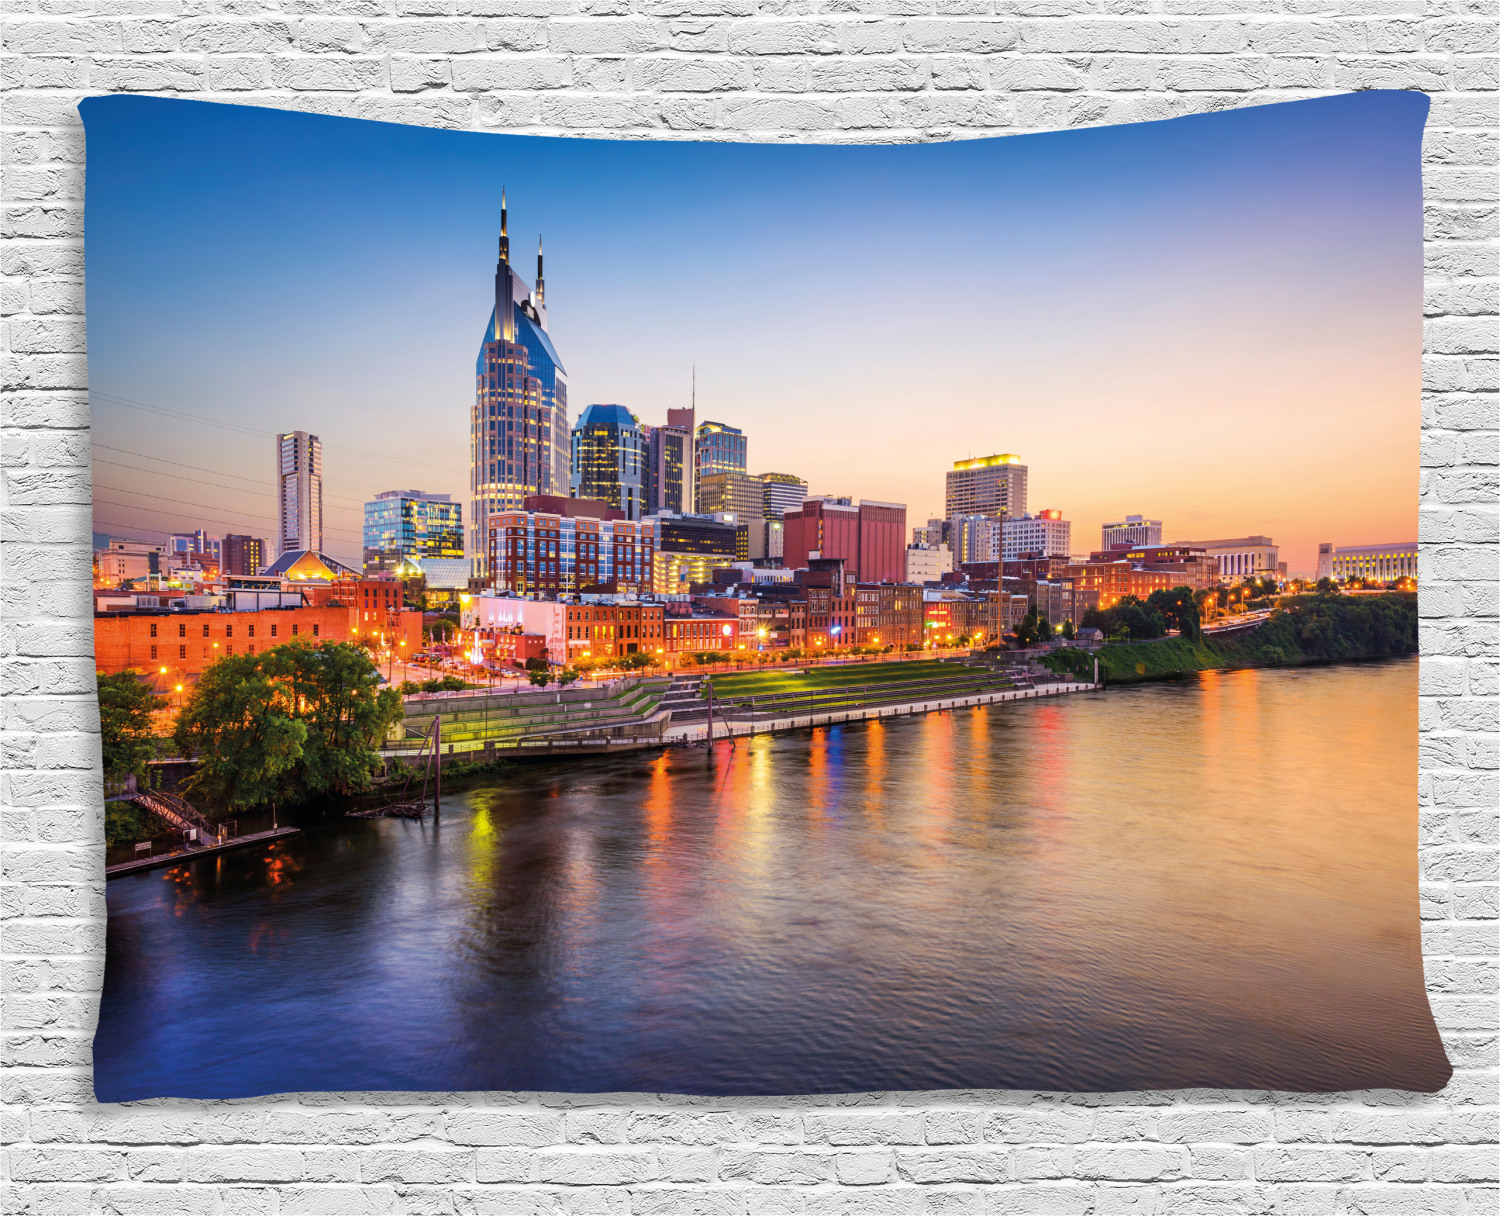 United States Tapestry Cumberland River Nashville Tennessee Evening Architecture Travel Destination Wall Hanging For Bedroom Living Room Dorm Decor 80w X 60l Inches Multicolor By Ambesonne Walmart Com Walmart Com